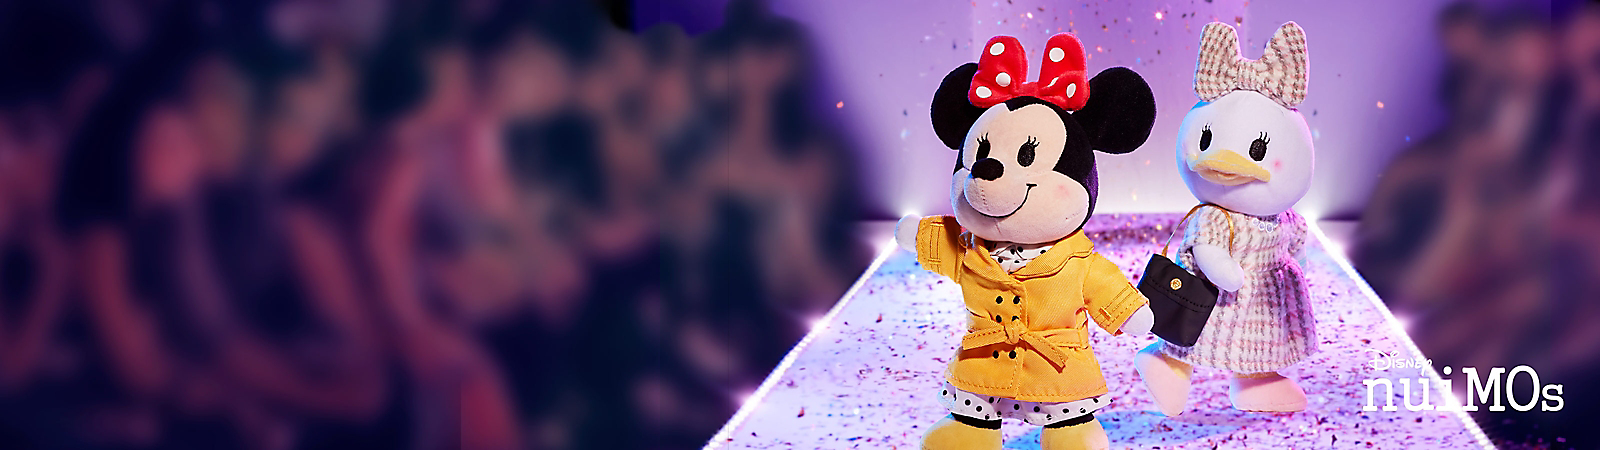 Background image of Disney nuiMOs